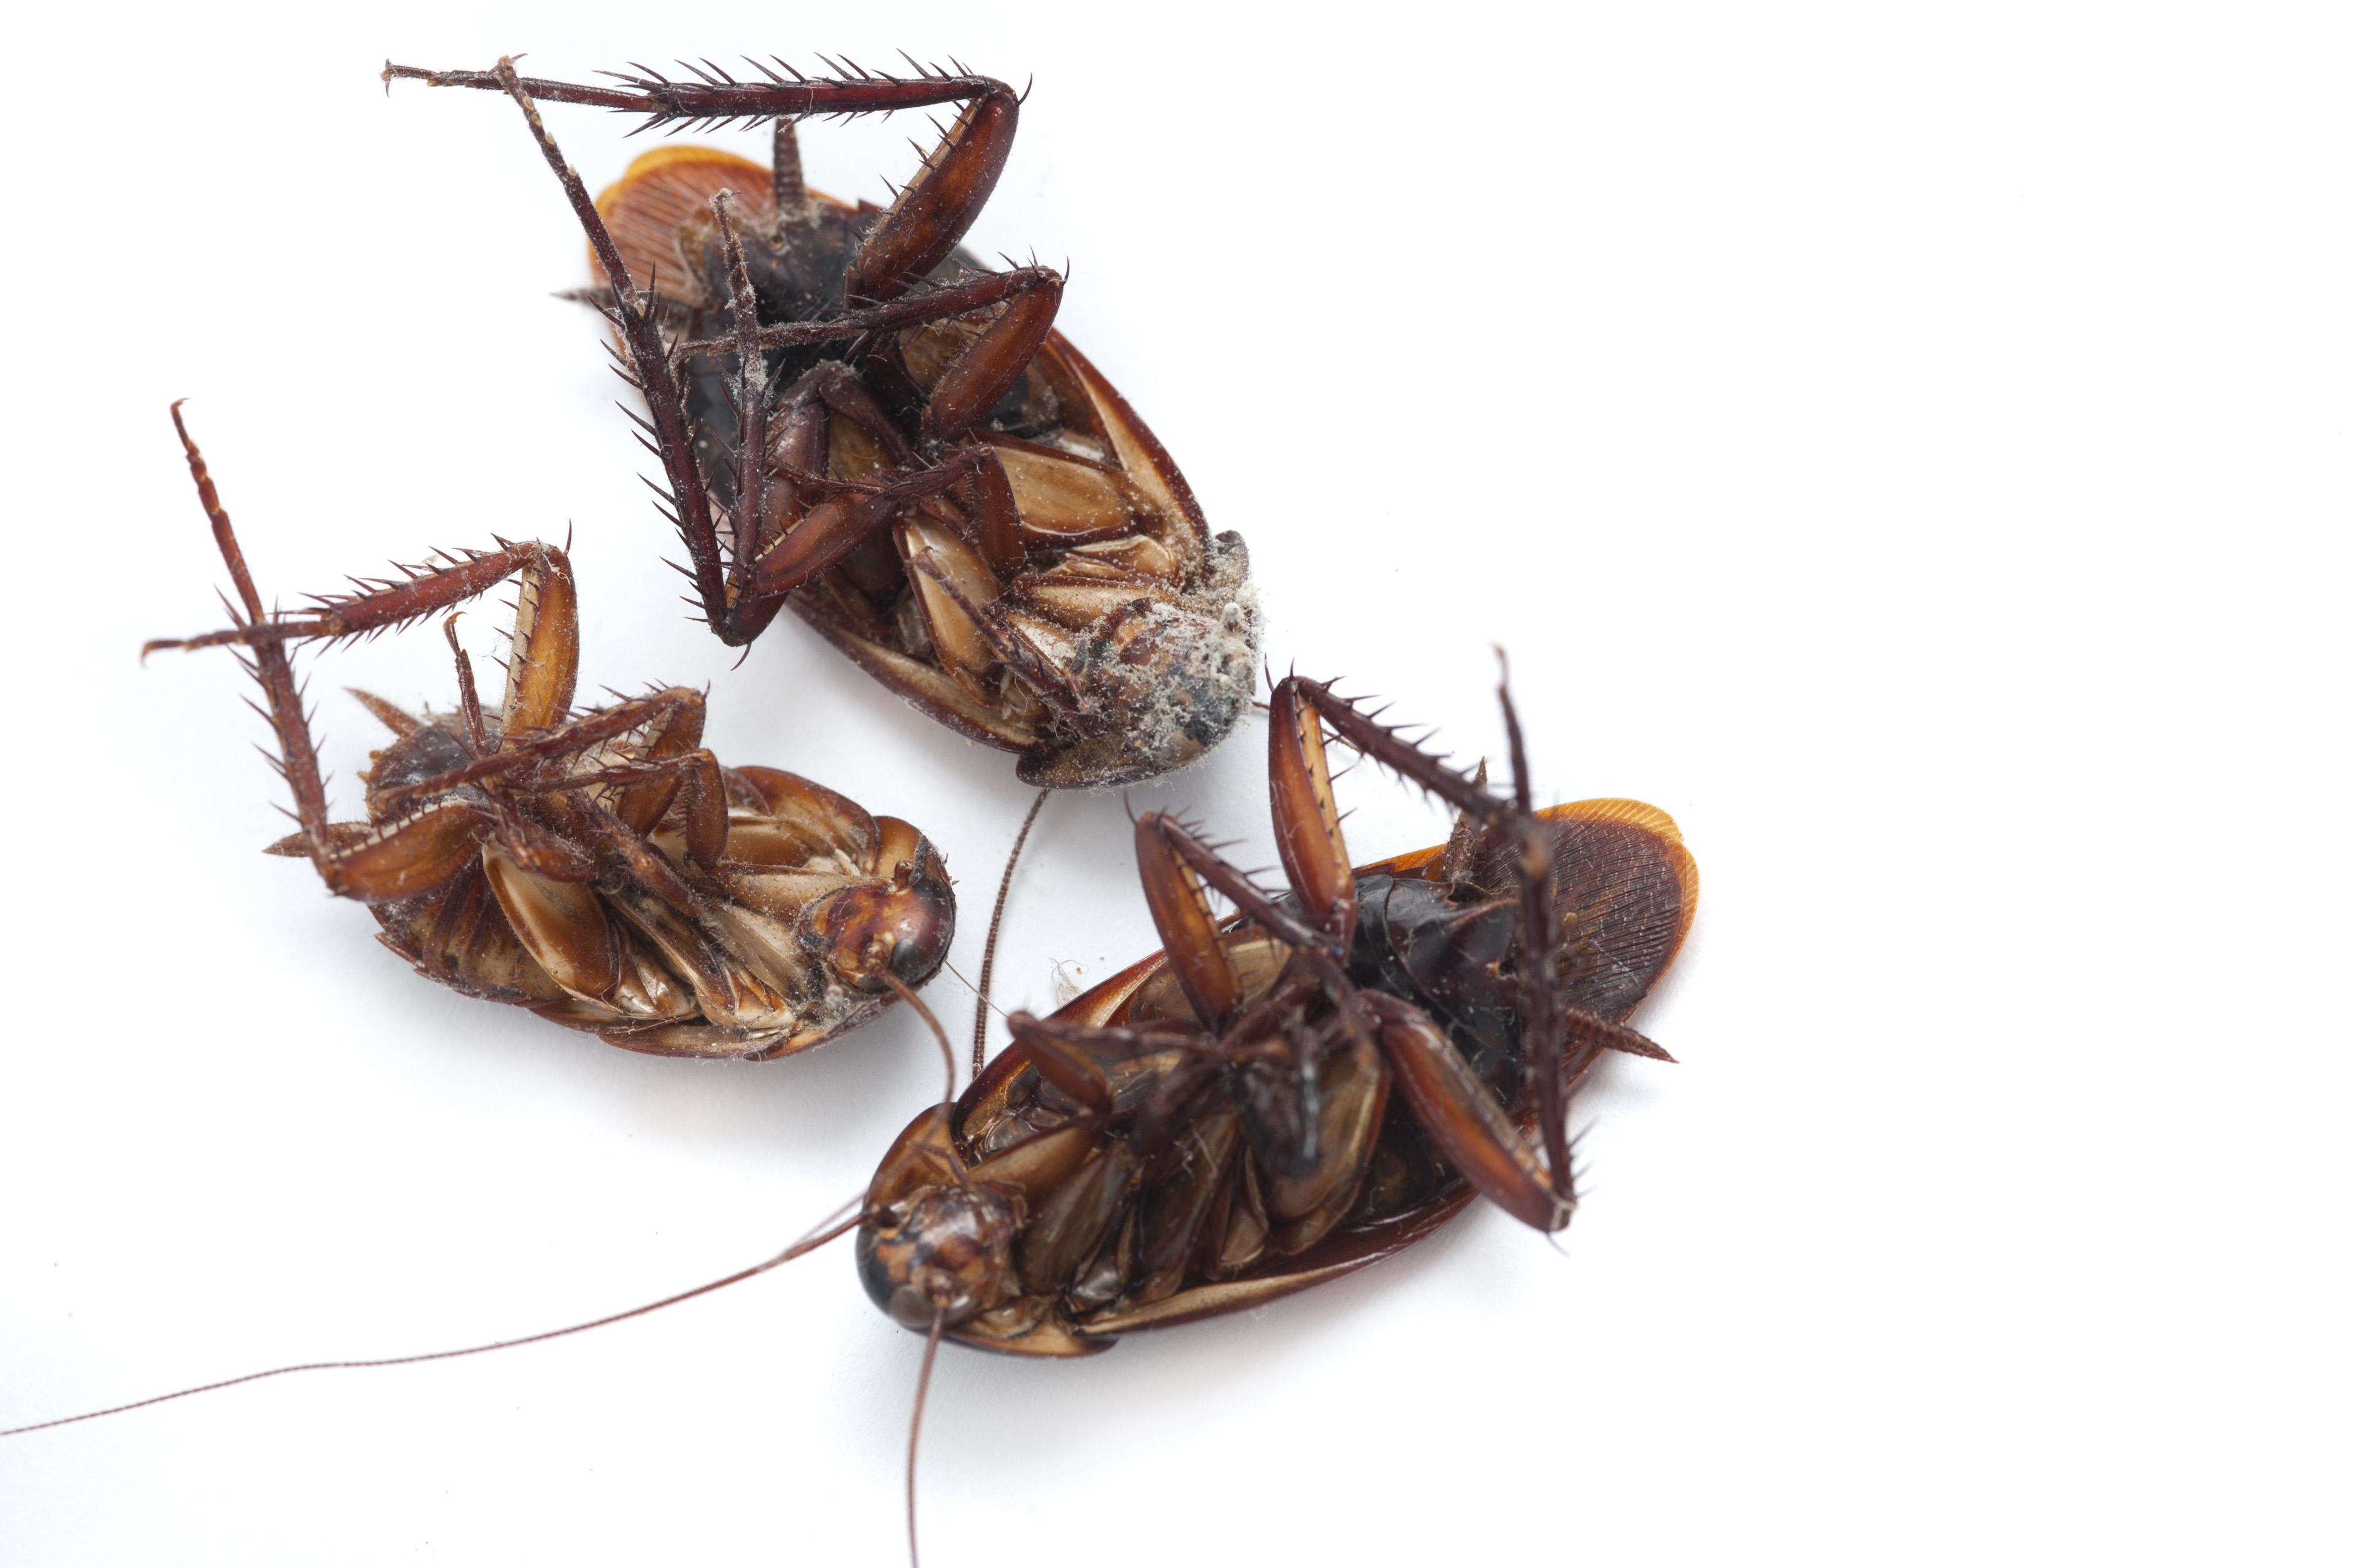 Three dead cockroaches lying upside down on a white background with copyspace, a common household pest